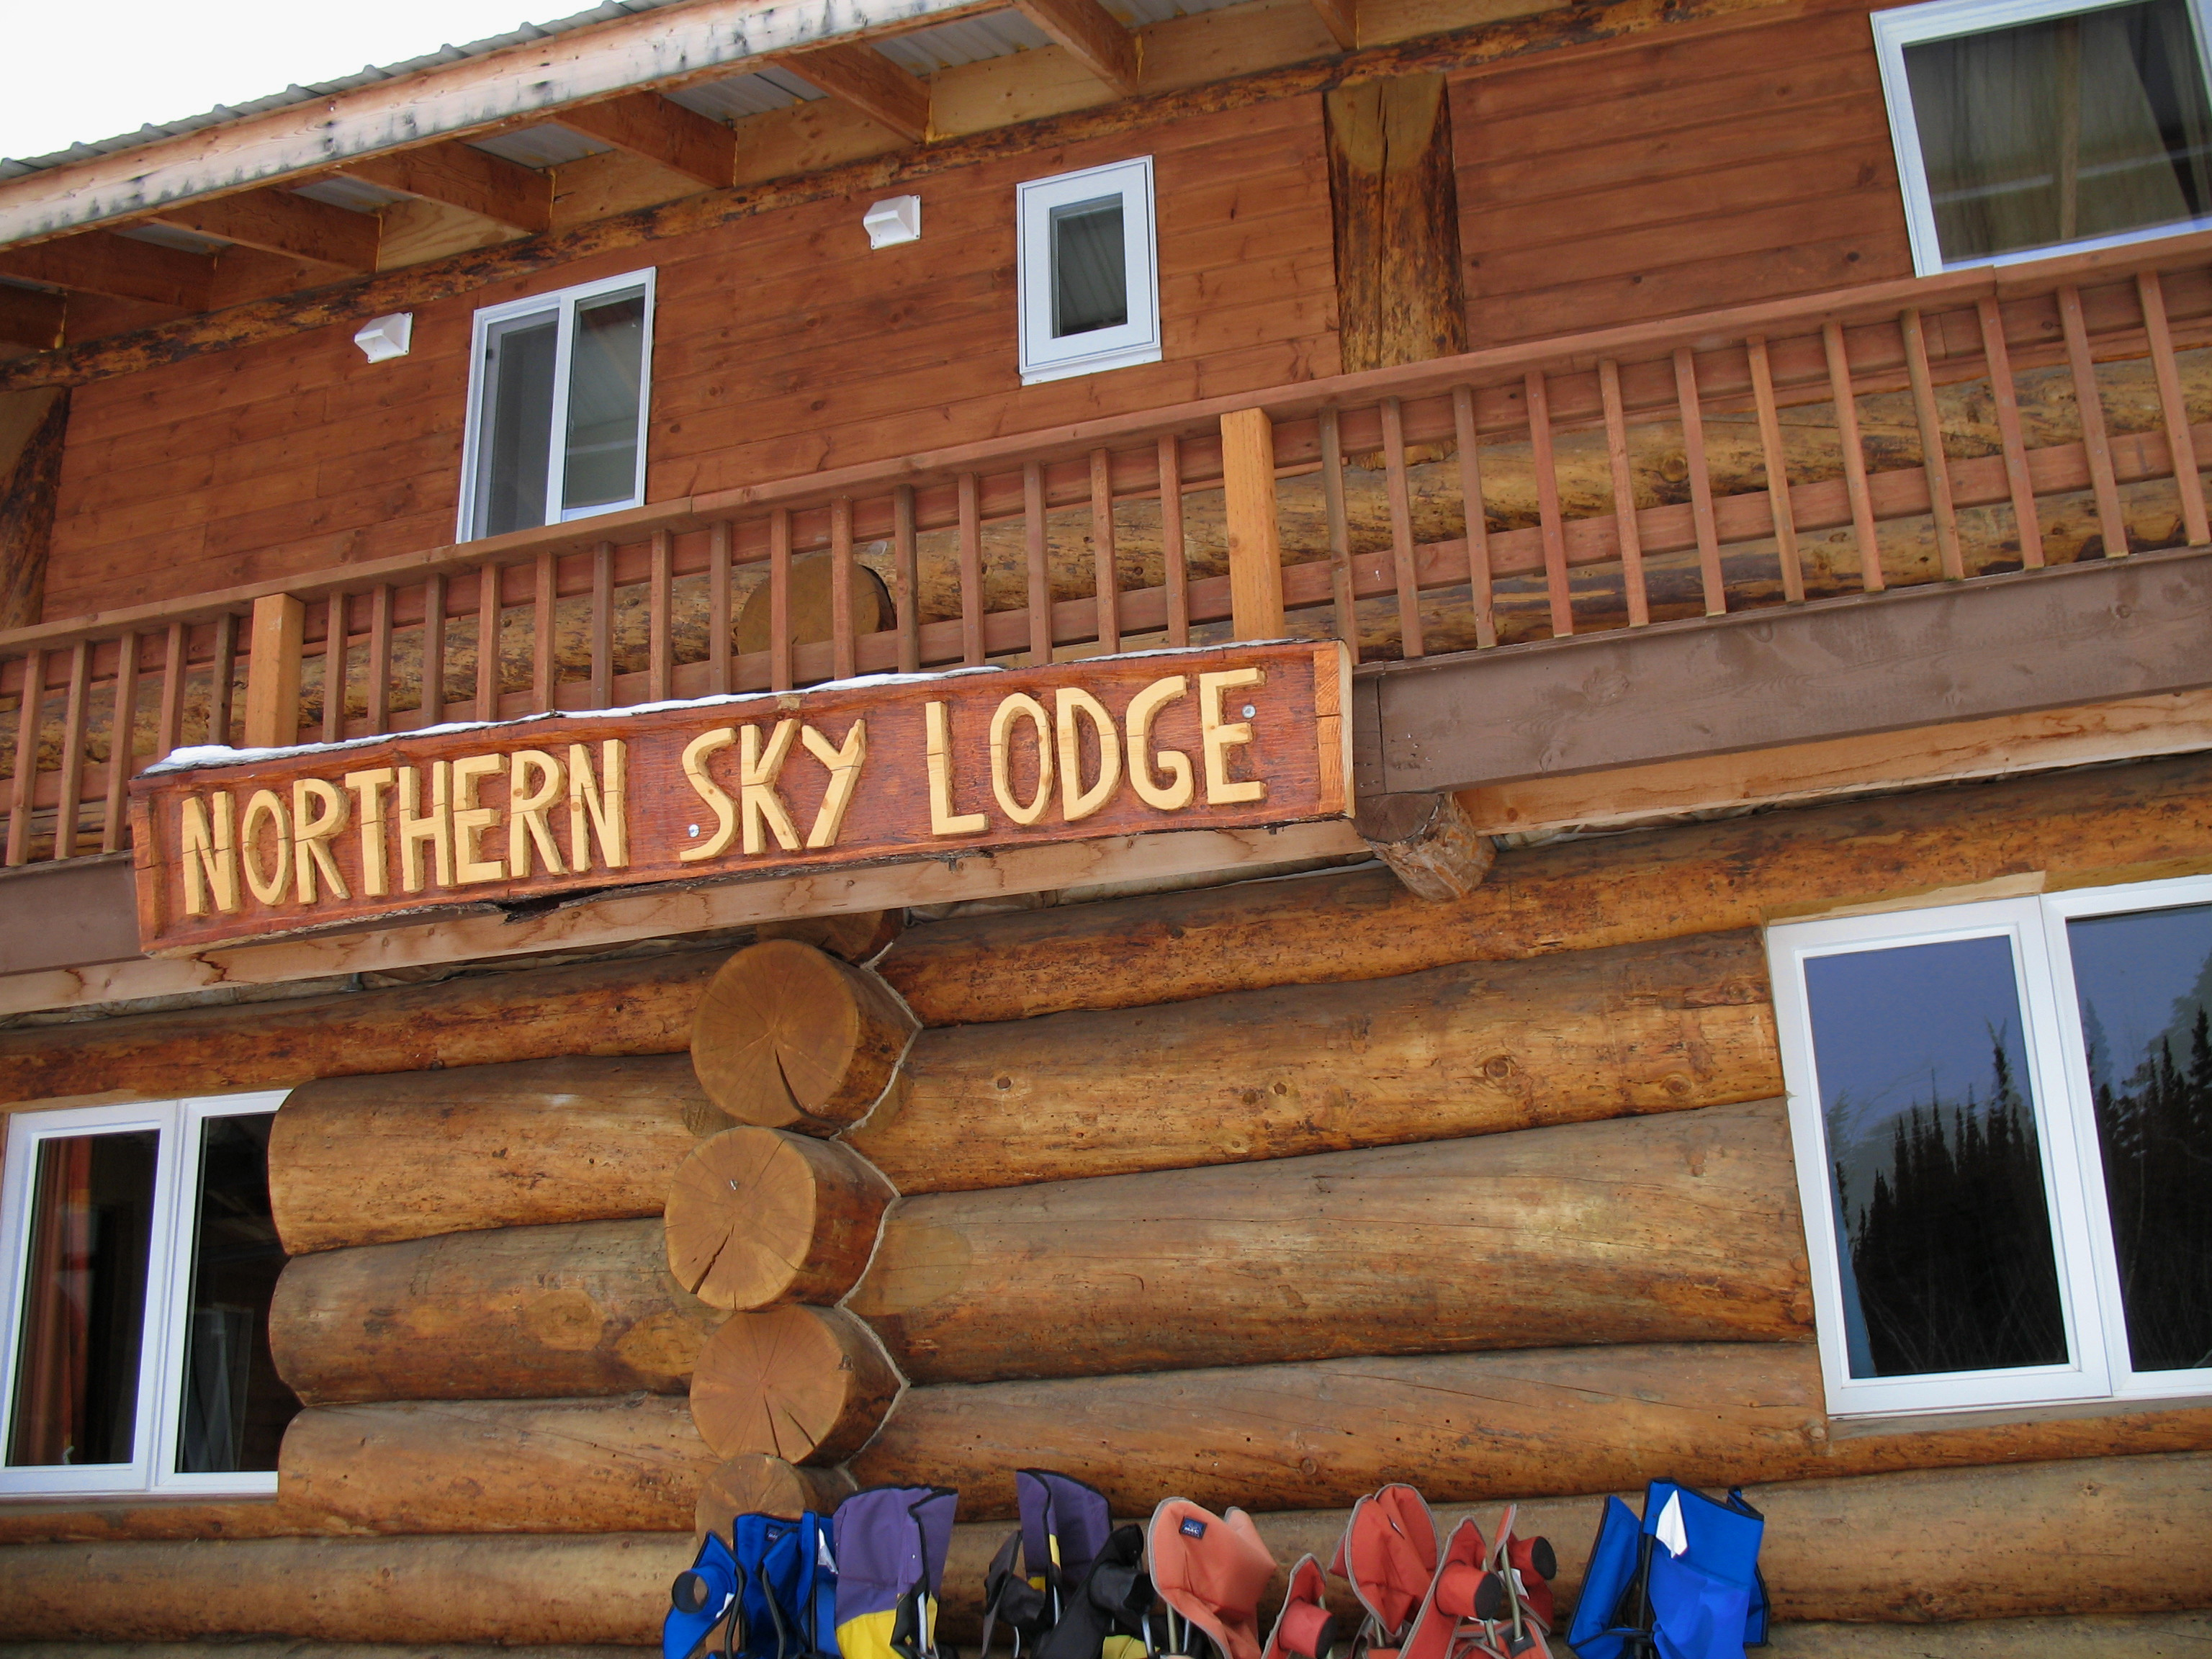 Northern Sky Lodge